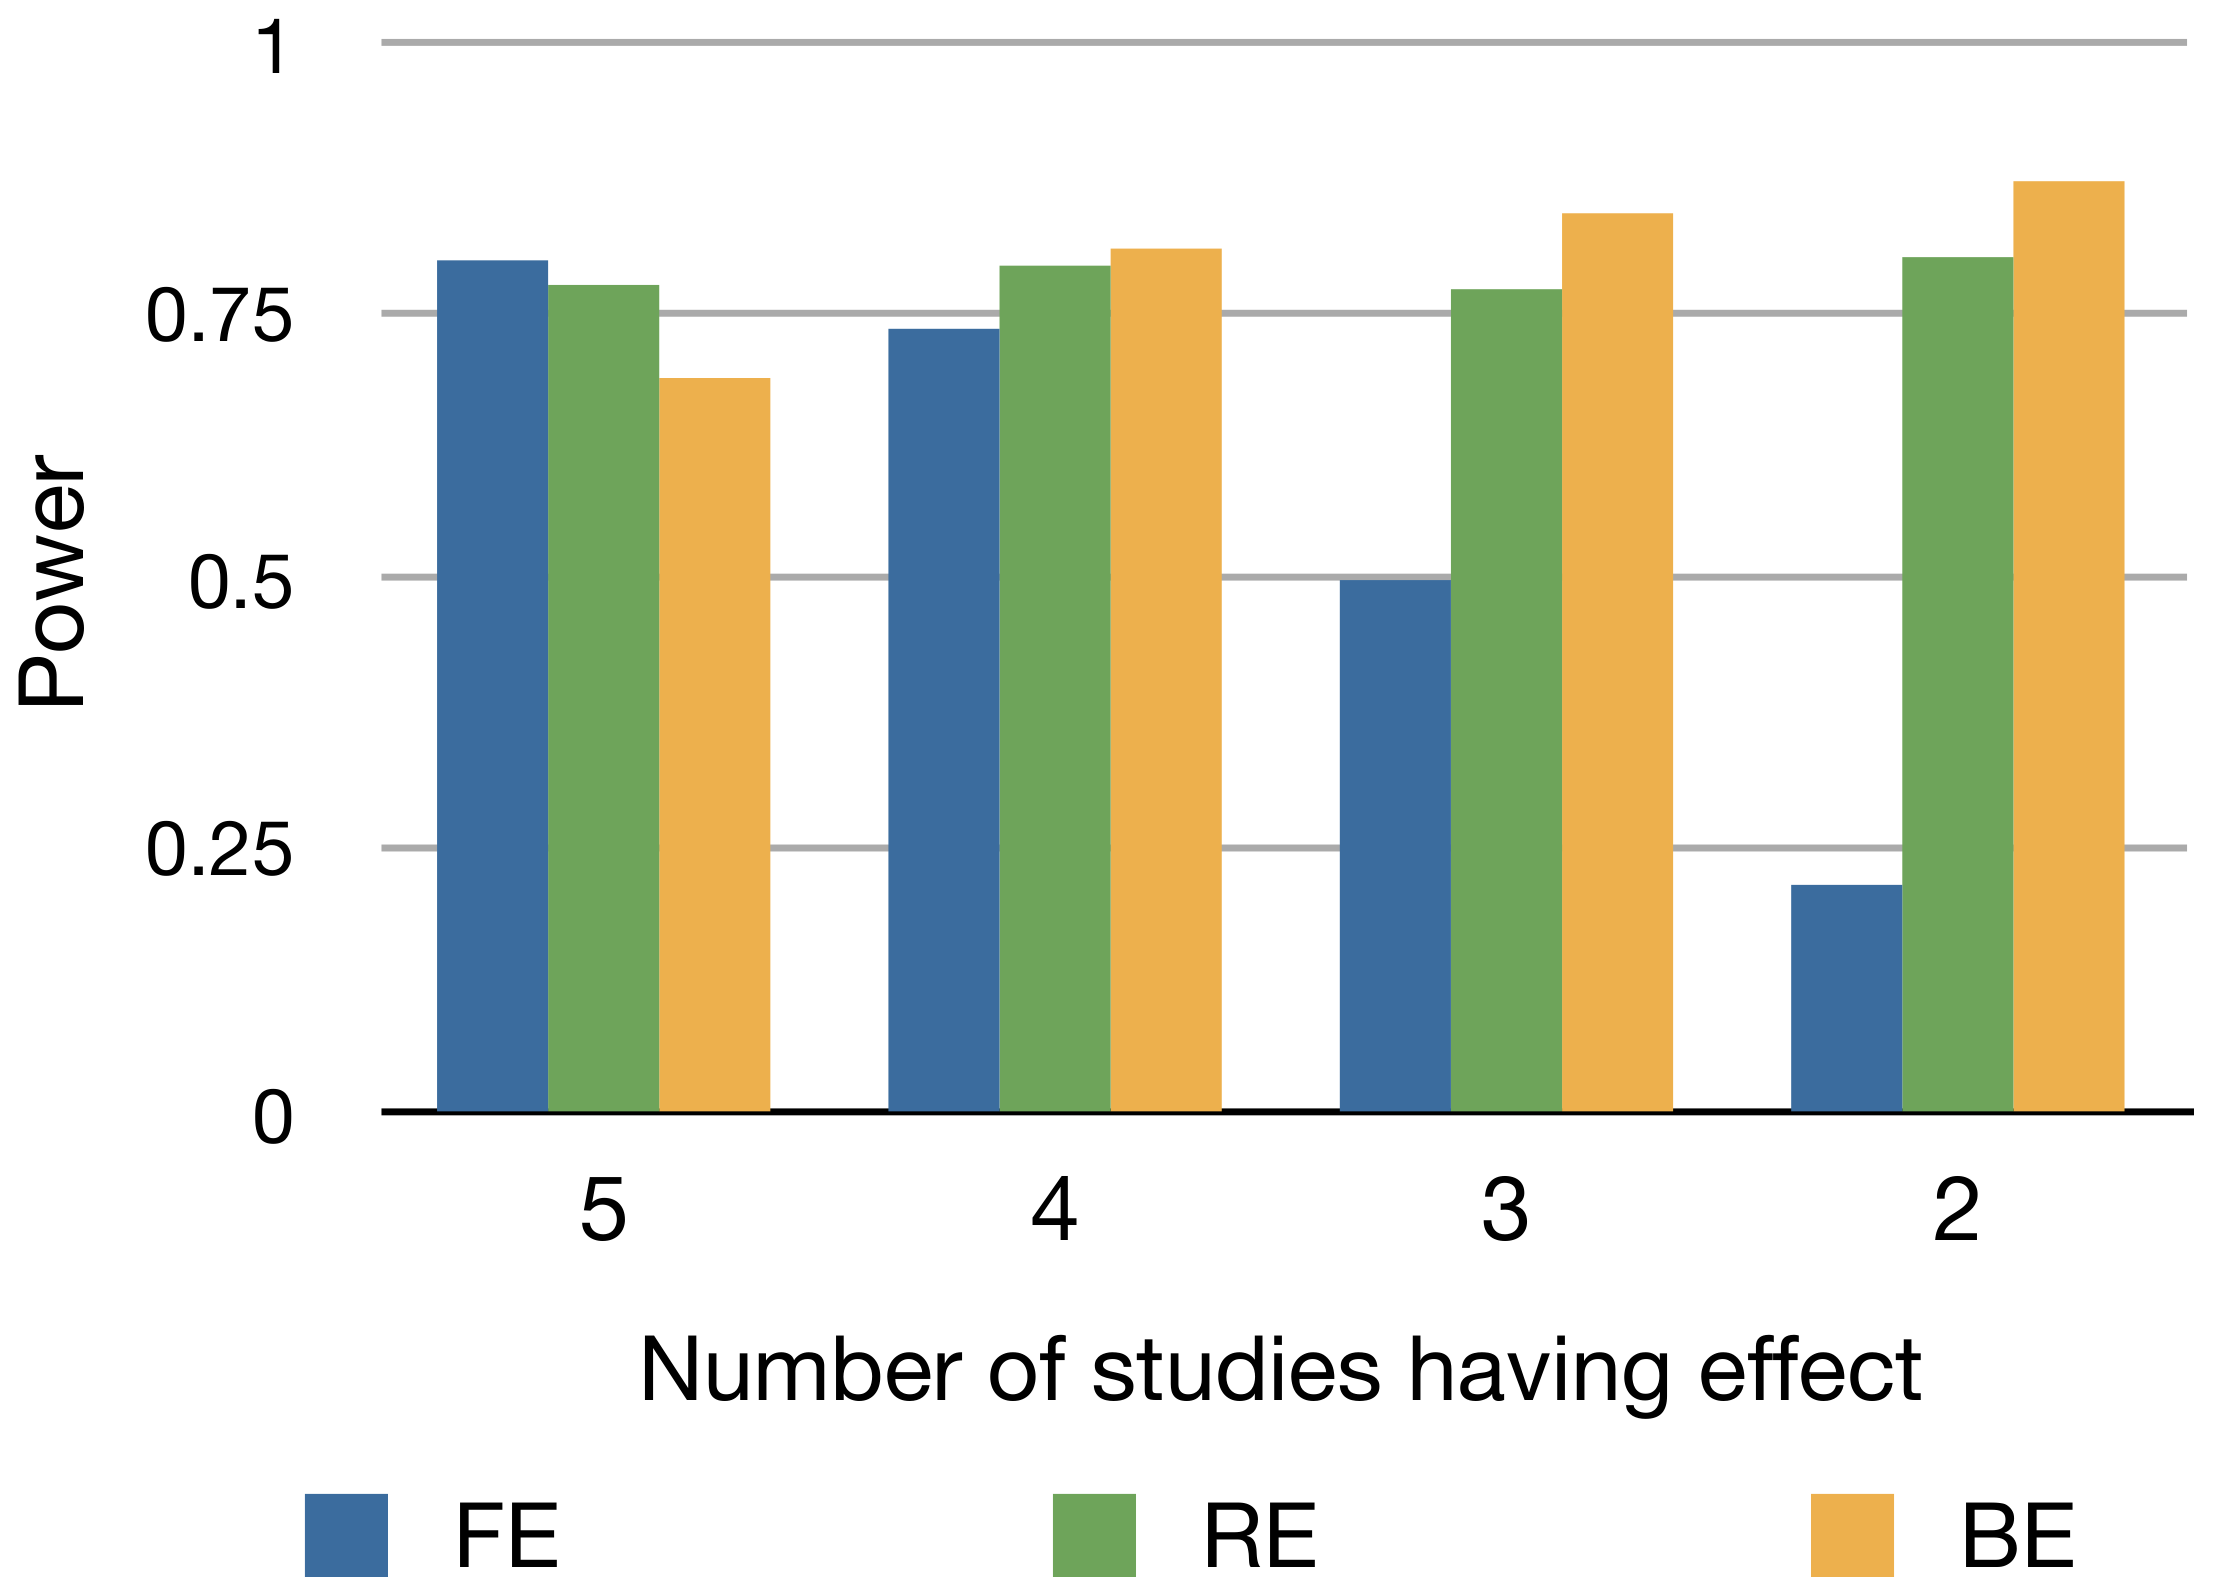 Power of FE, RE, and BE method when the number of studies having an effect varies.